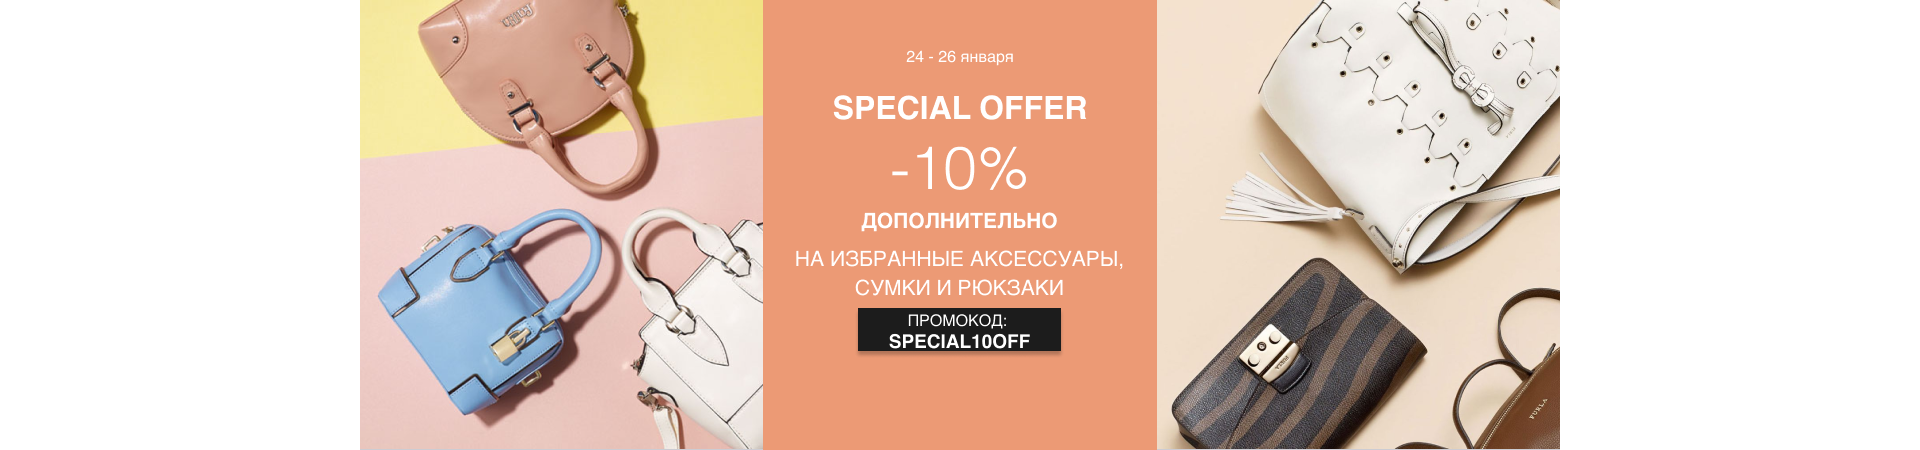 ACCESSORY SPECIAL OFFER: